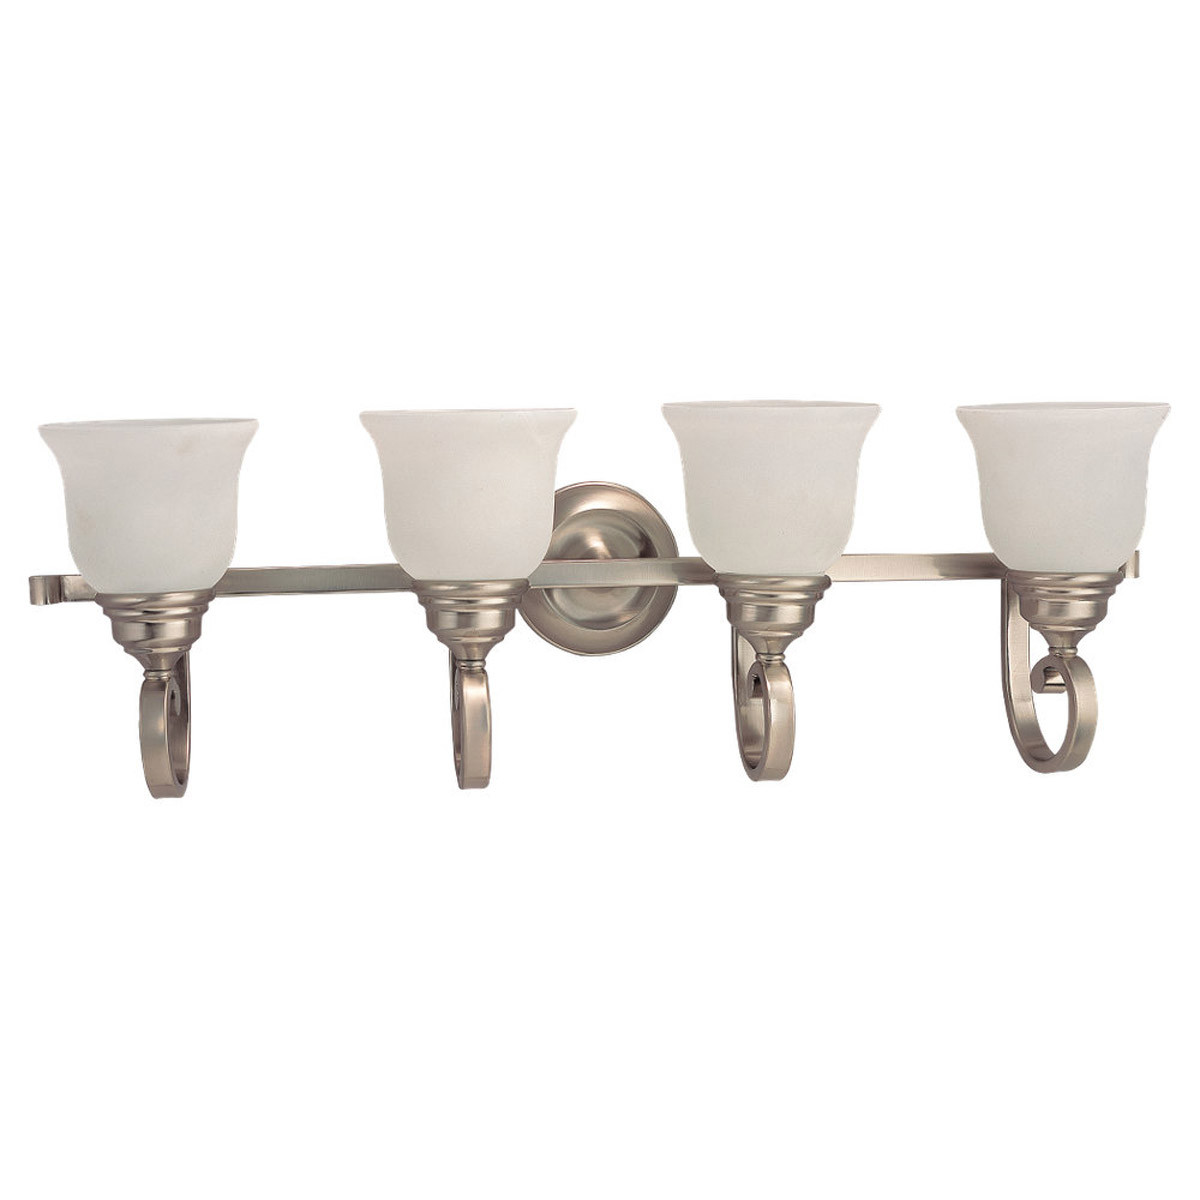 Sea Gull Lighting Serenity 4 Light Bath Vanity in Brushed Nickel 44192-962